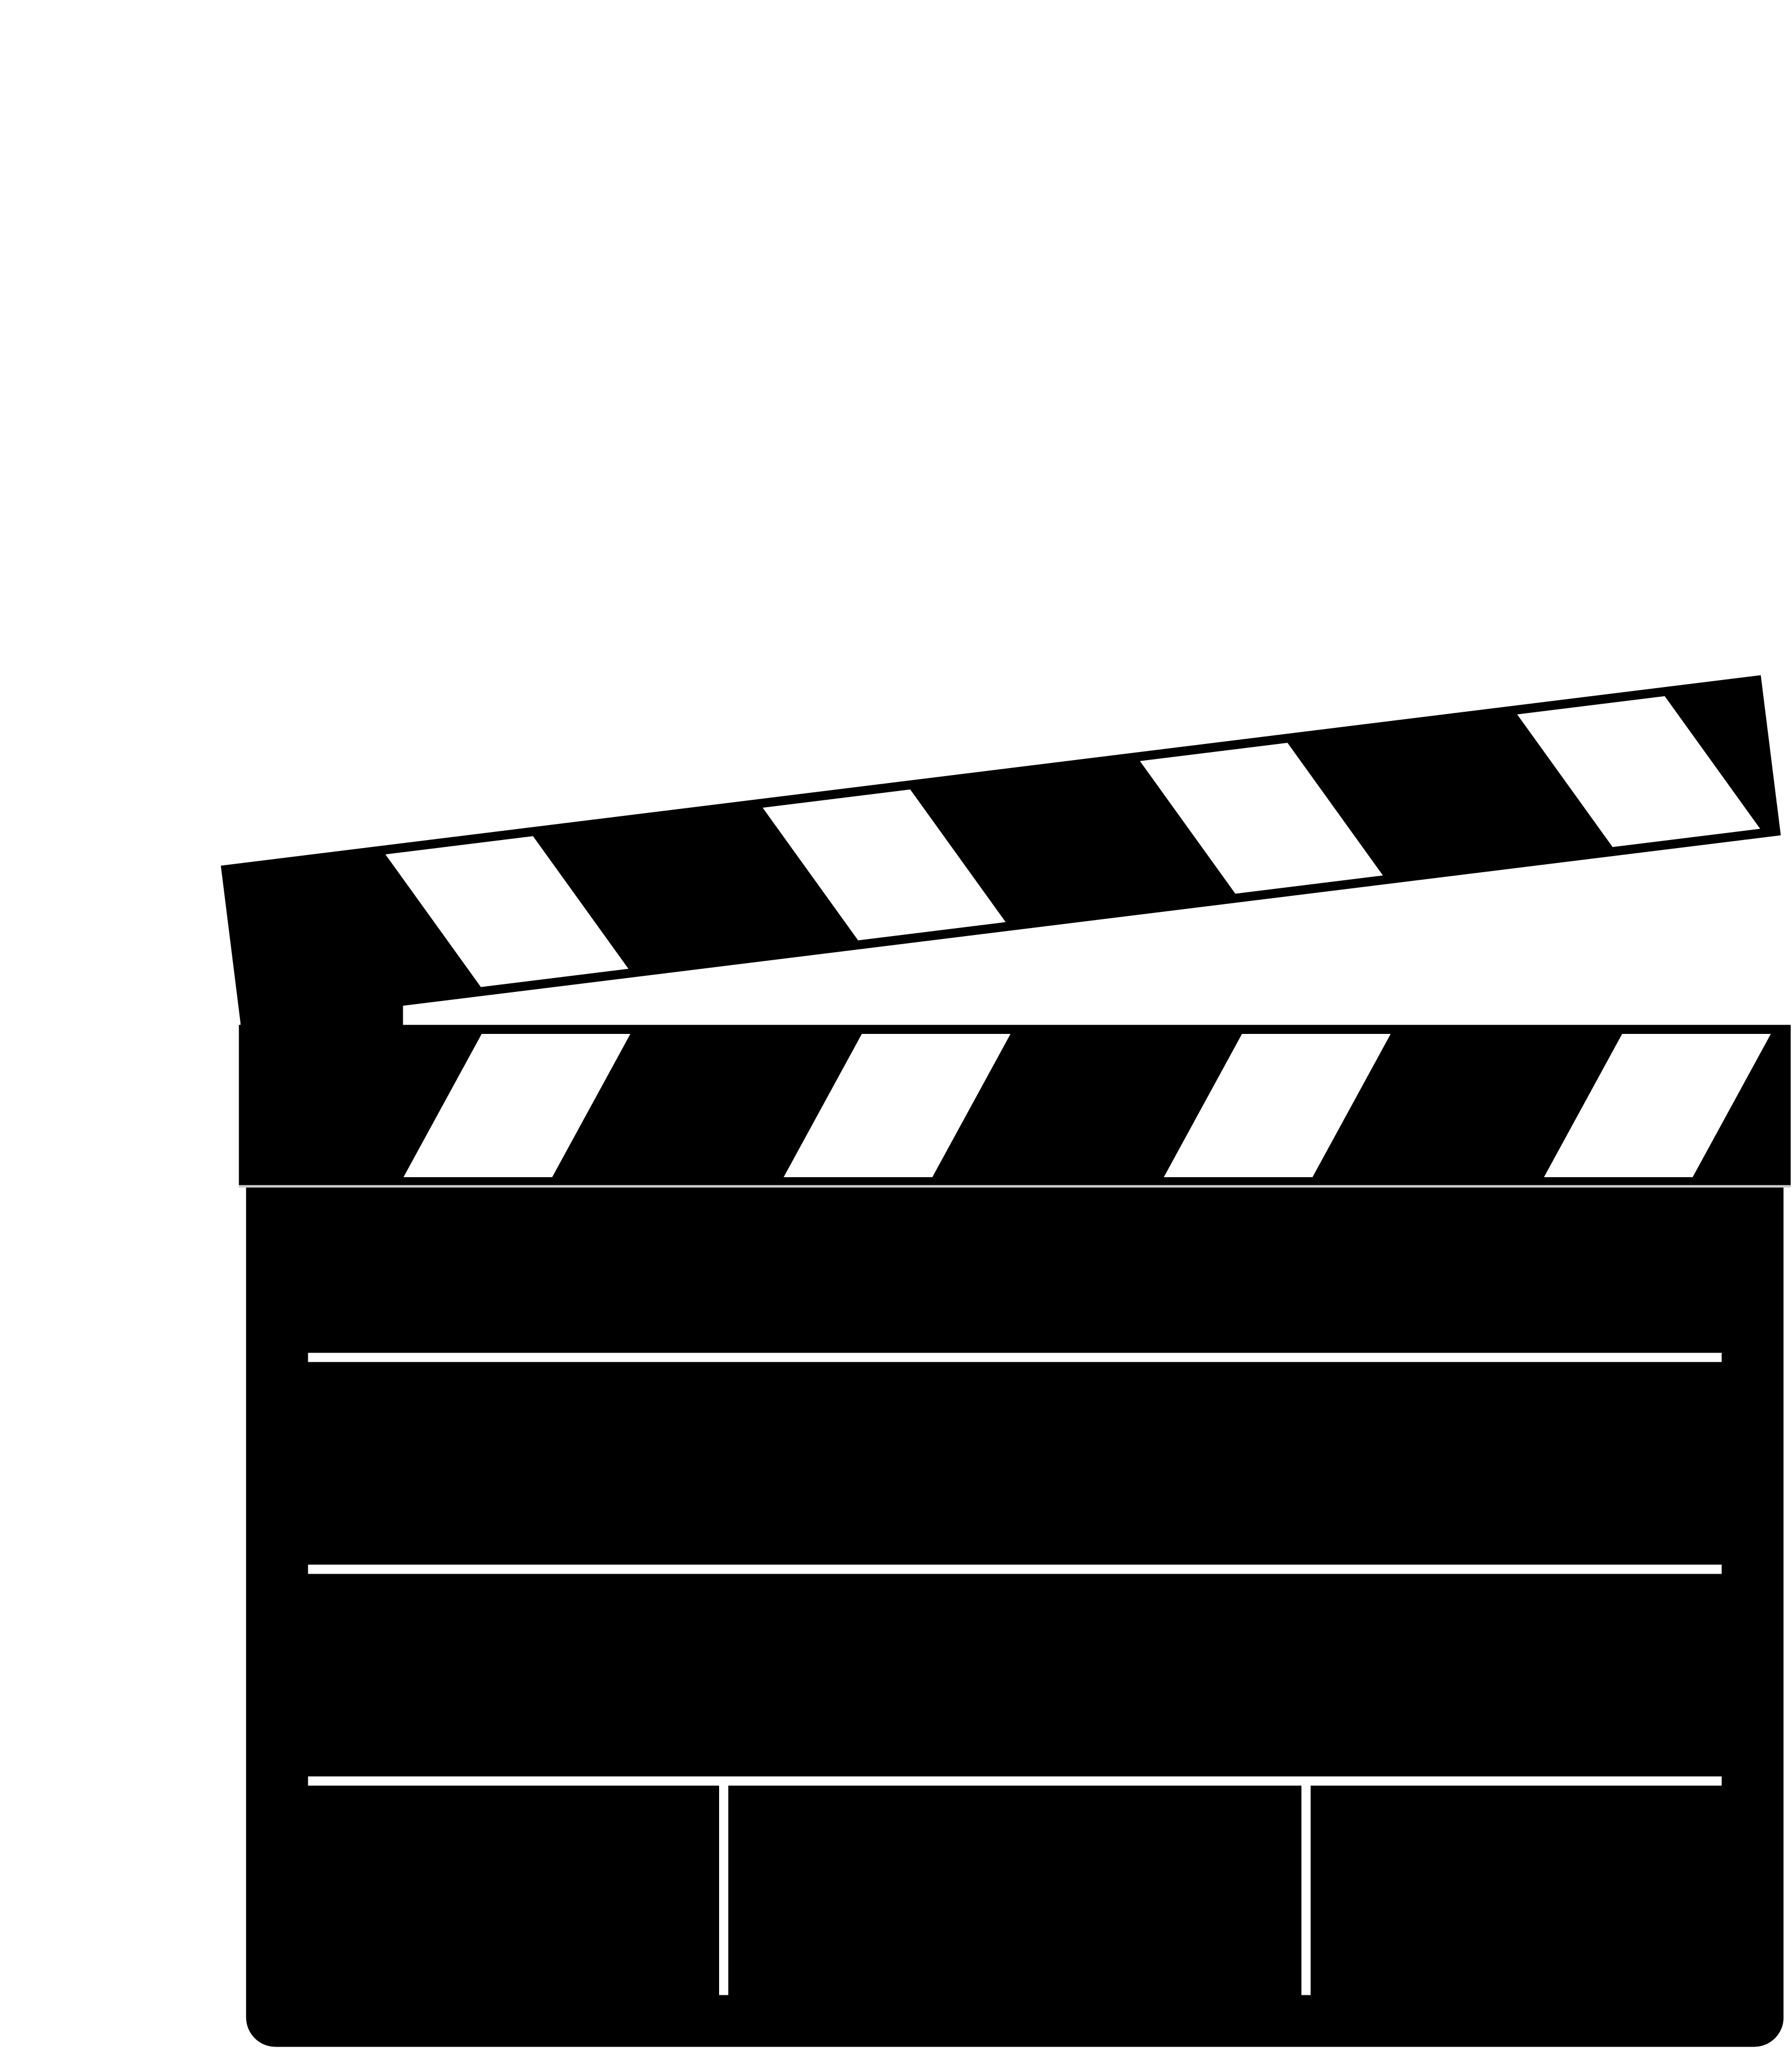 Movie slate png. Clapperboard transparent images all